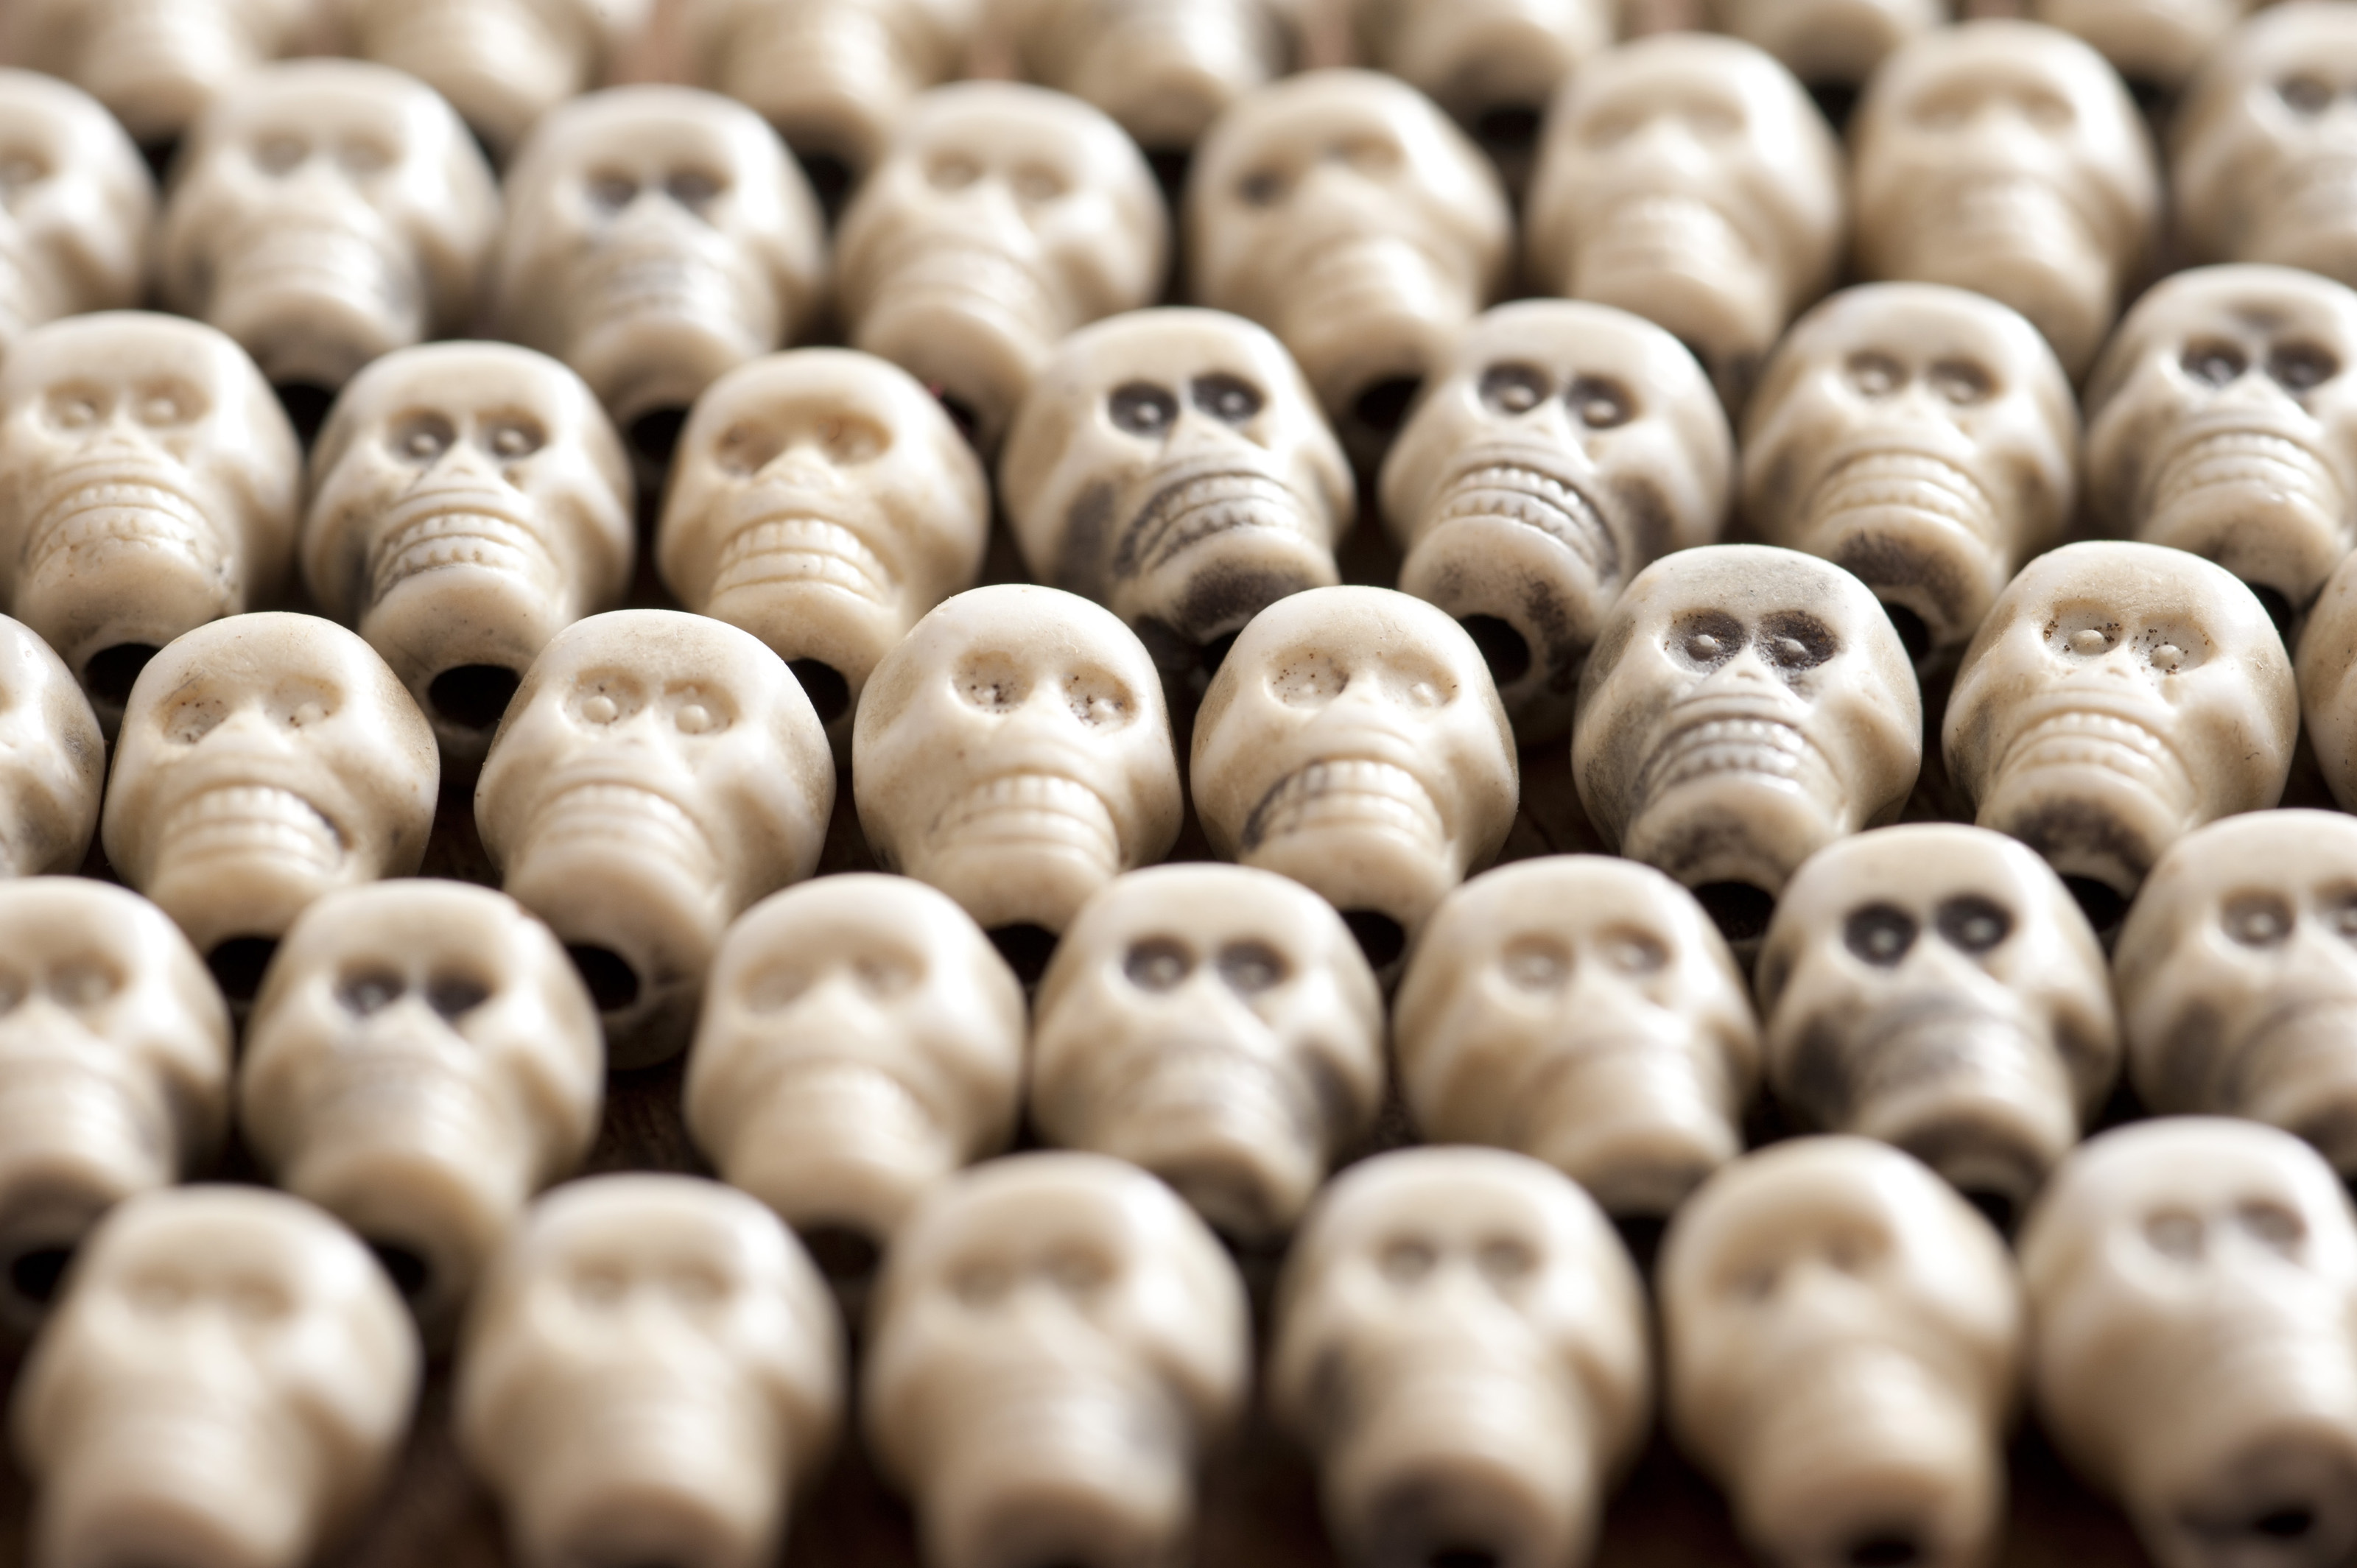 Carefully arranged lines of little plastic human like skulls. Center row in focus.